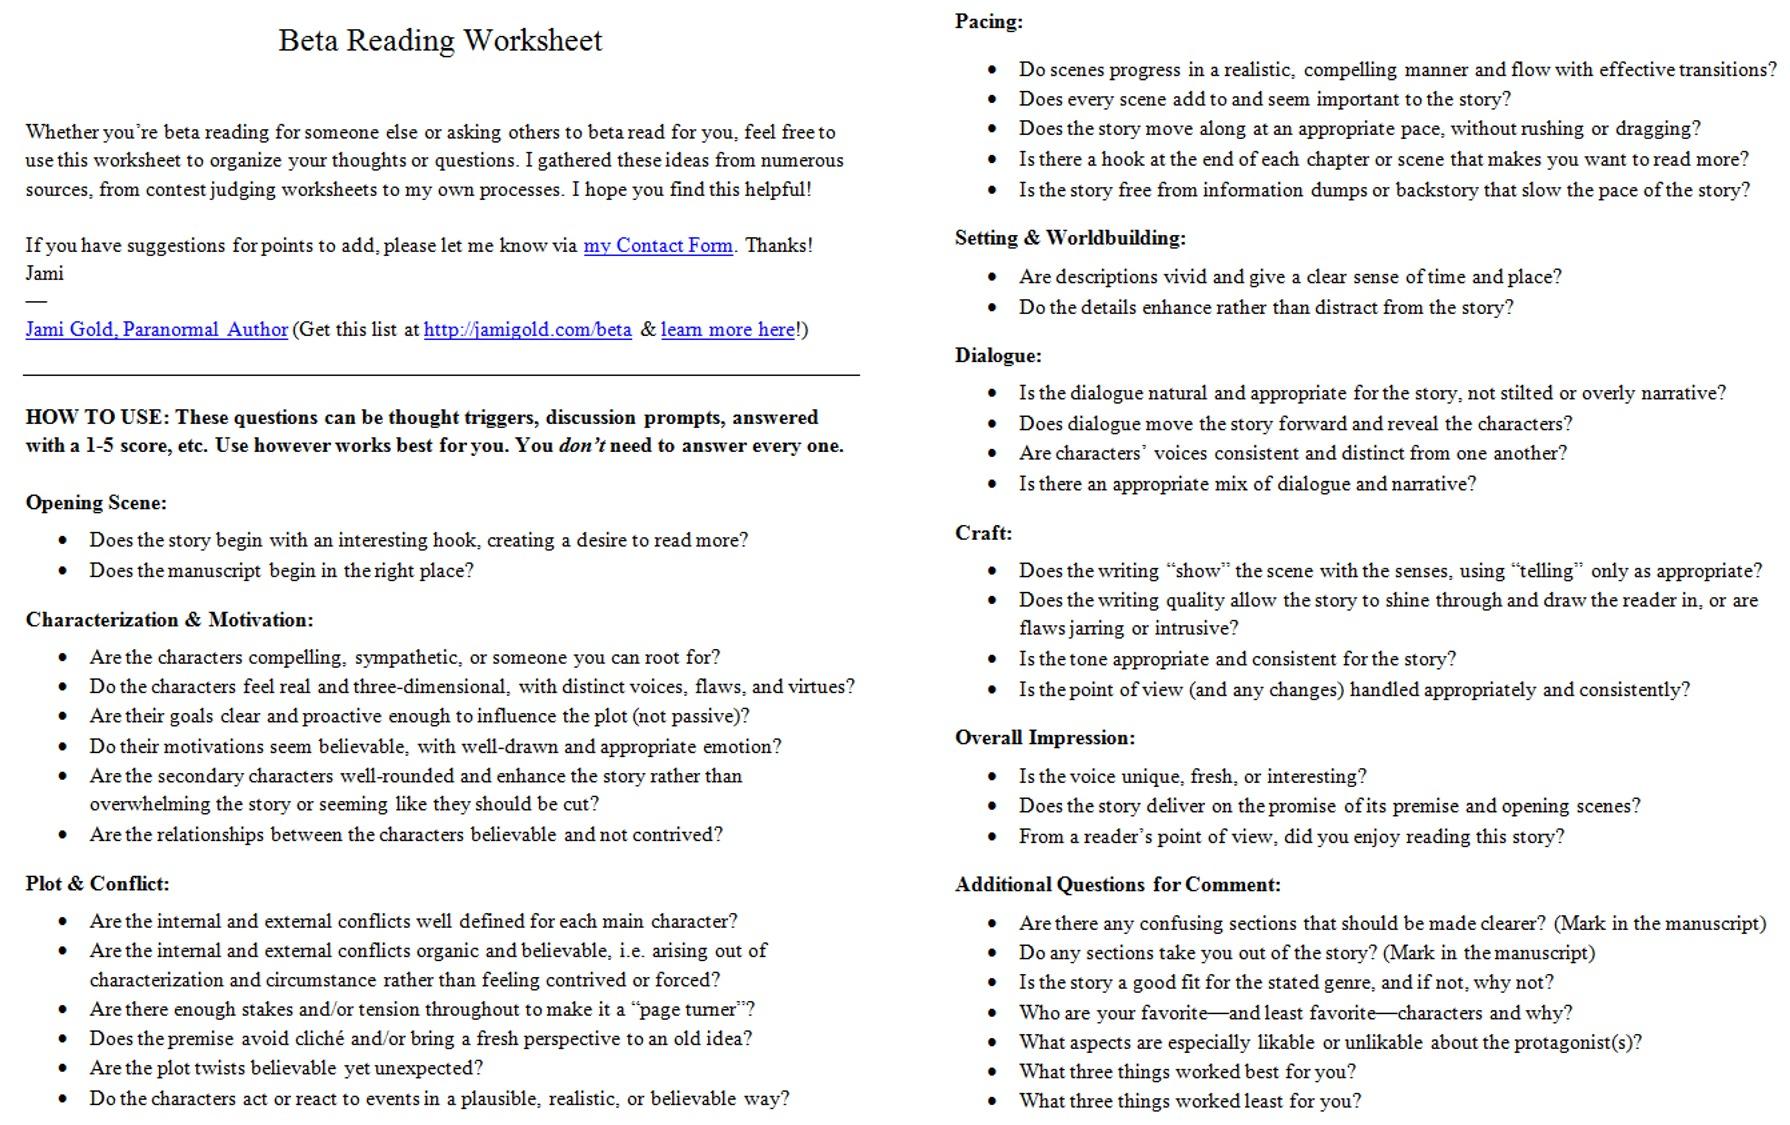 Aldiablosus  Personable Worksheets For Writers  Jami Gold Paranormal Author With Entrancing Screen Shot Of The Twopage Beta Reading Worksheet With Delectable Multiplication Of Integers Worksheets Also Sign Language Printable Worksheets In Addition Multiplication Worksheet Maker And Regular Verbs Worksheet As Well As Graphs And Functions Worksheets Additionally Adjectives Worksheet Th Grade From Jamigoldcom With Aldiablosus  Entrancing Worksheets For Writers  Jami Gold Paranormal Author With Delectable Screen Shot Of The Twopage Beta Reading Worksheet And Personable Multiplication Of Integers Worksheets Also Sign Language Printable Worksheets In Addition Multiplication Worksheet Maker From Jamigoldcom